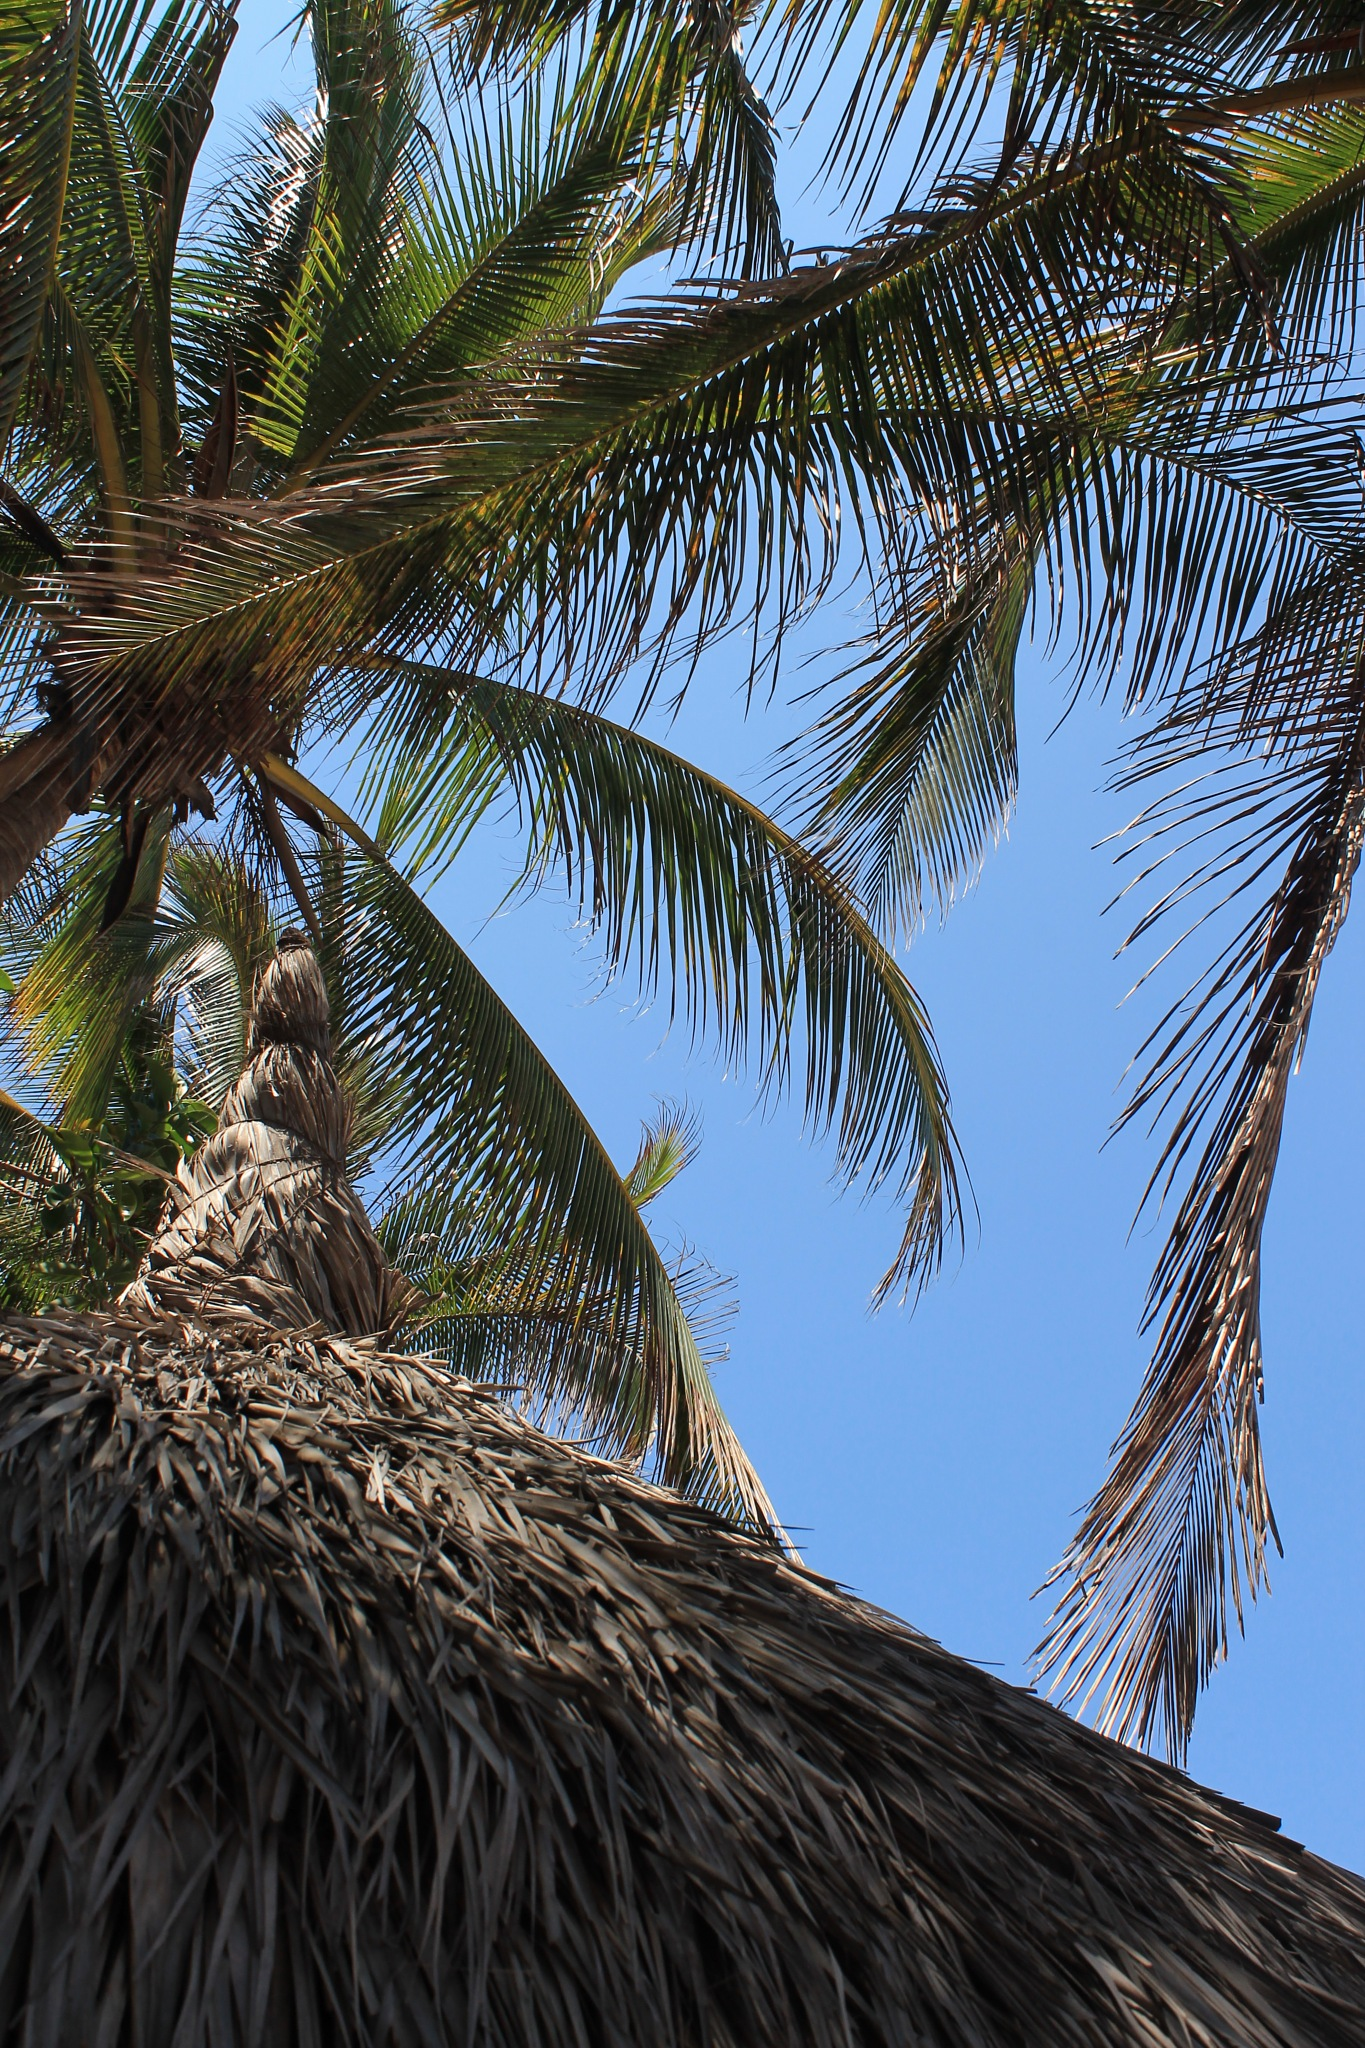 PALM LEAVES TREE by Paul Alvarez